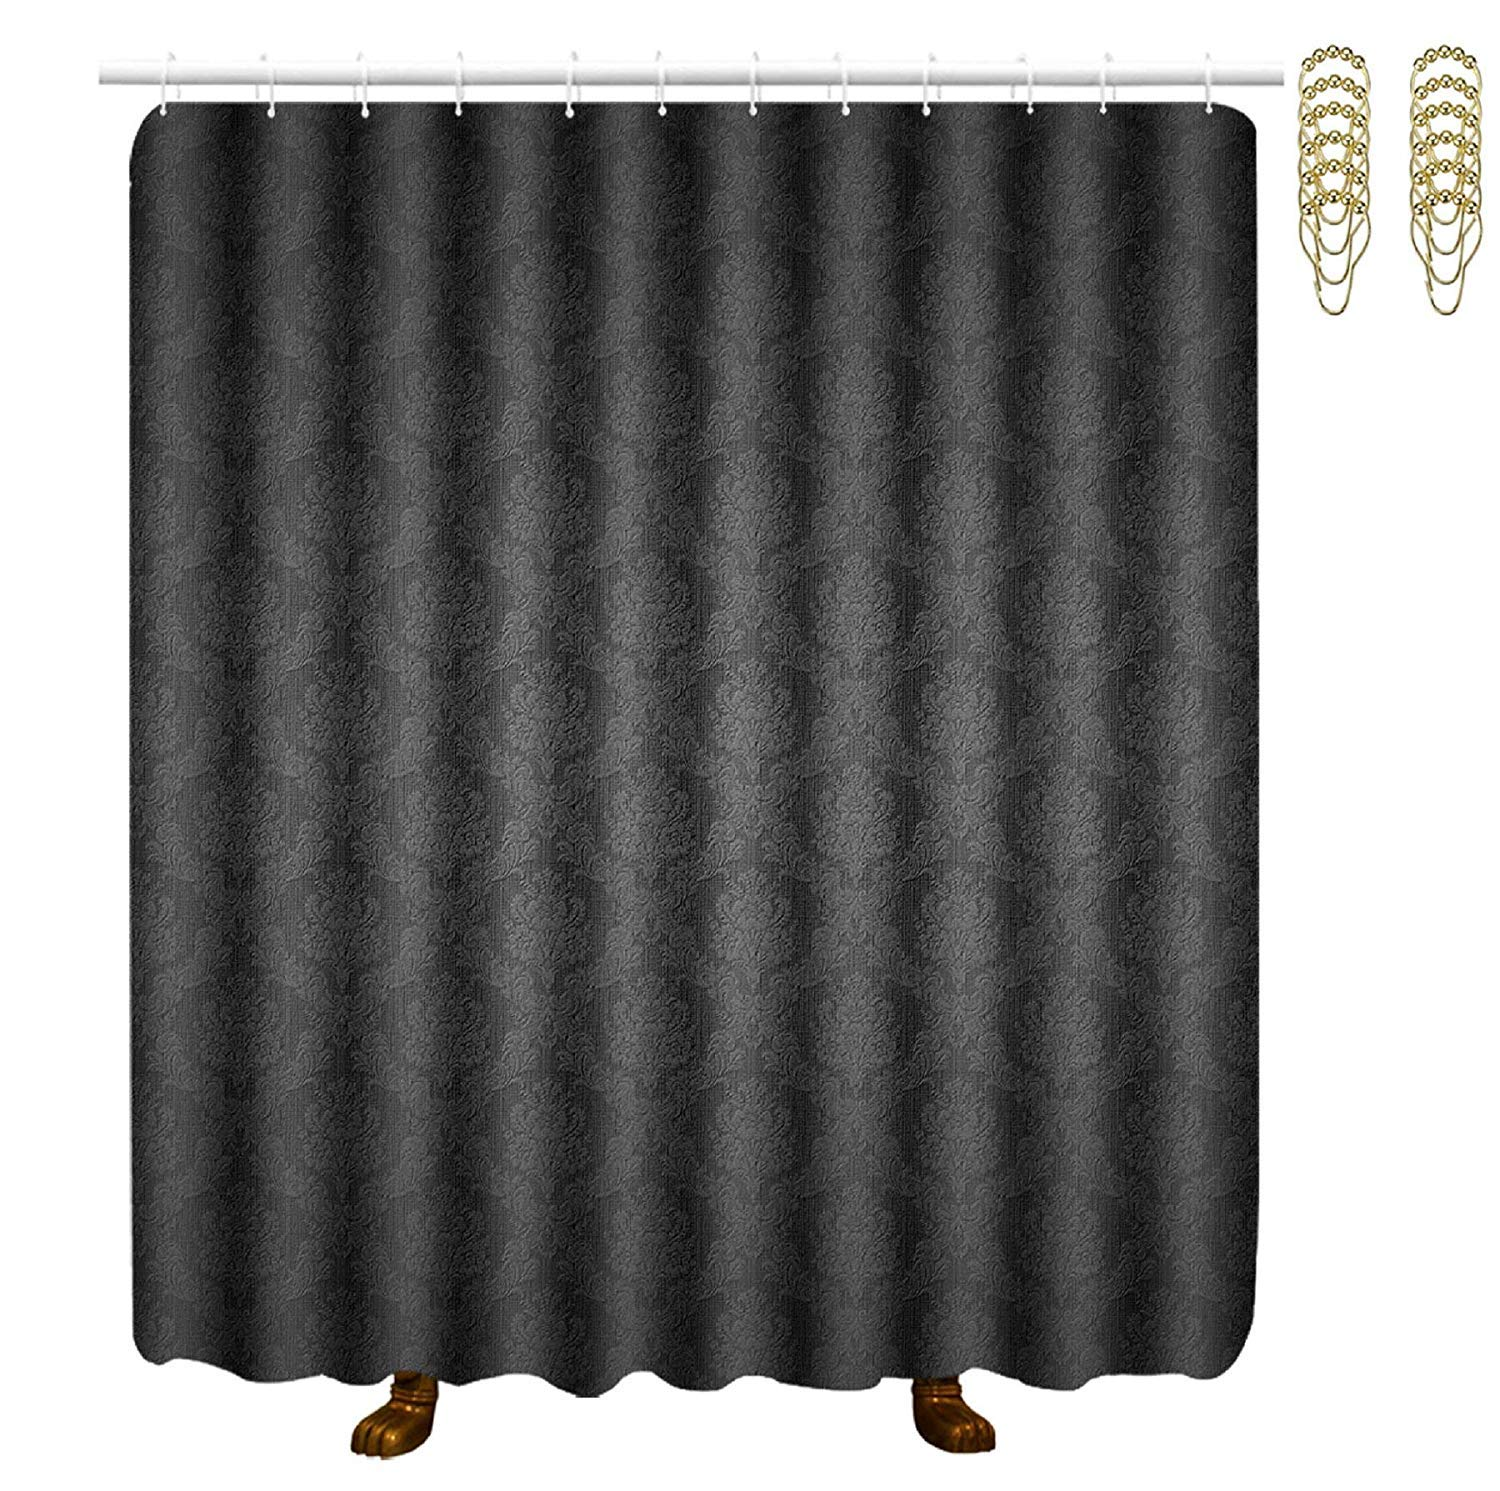 COVASA Decorative Water Repellant Shower Curtain 72x72 Inches Comes with 12 Hooks (Black Elegant Ornaments Texture)